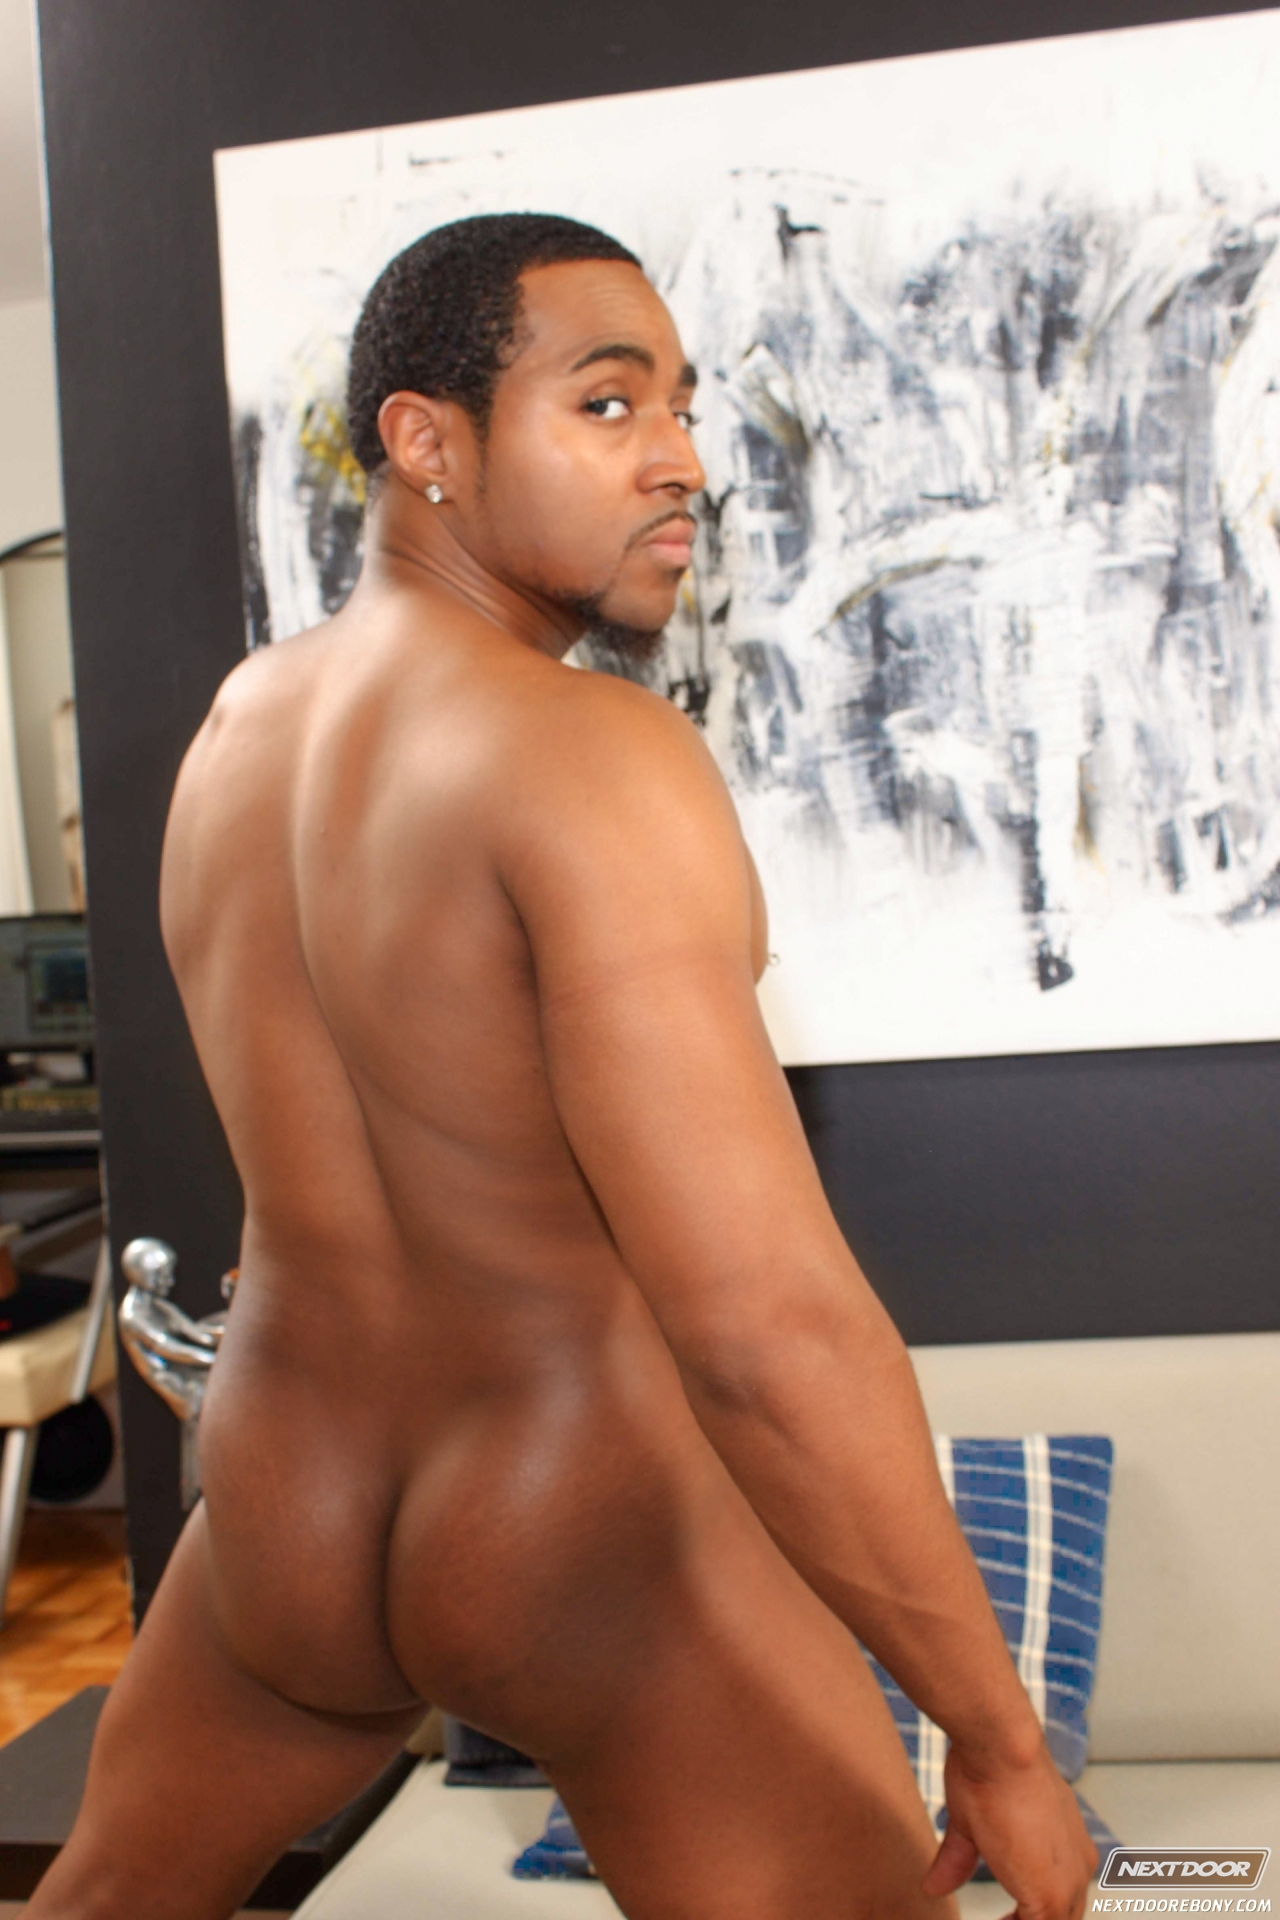 Nude black men show their anus seems